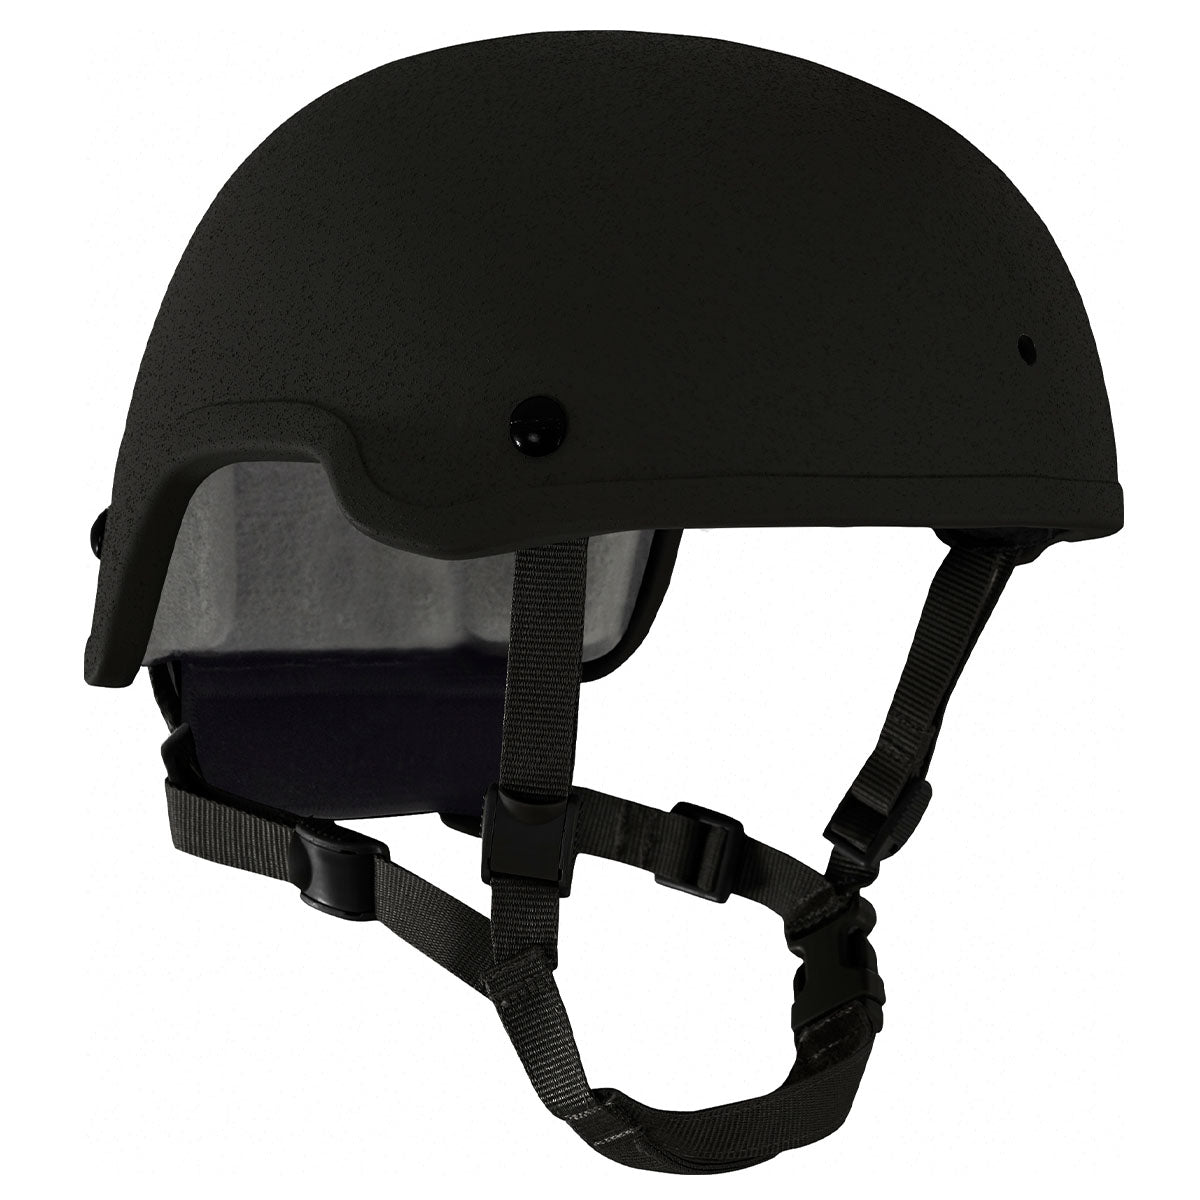 Viper A3 High Cut Helmet